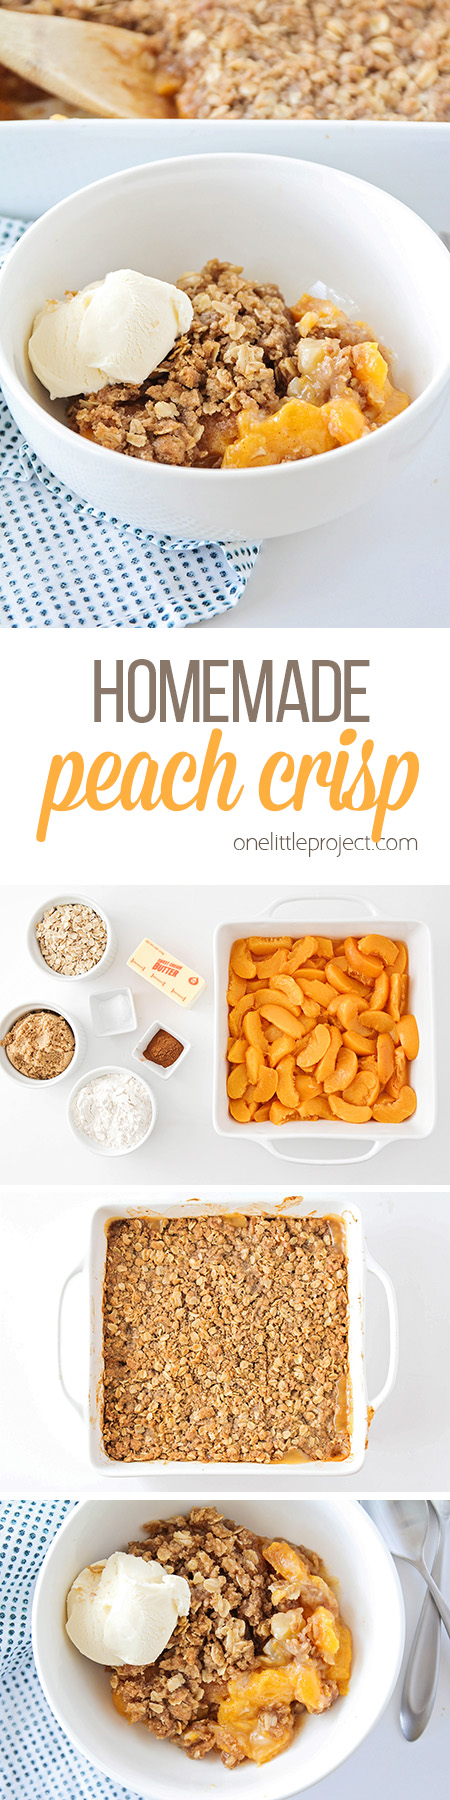 This sweet homemade peach crisp is bursting with juicy peaches, and topped with a delicious and crisp oatmeal crust for an unforgettable dessert!